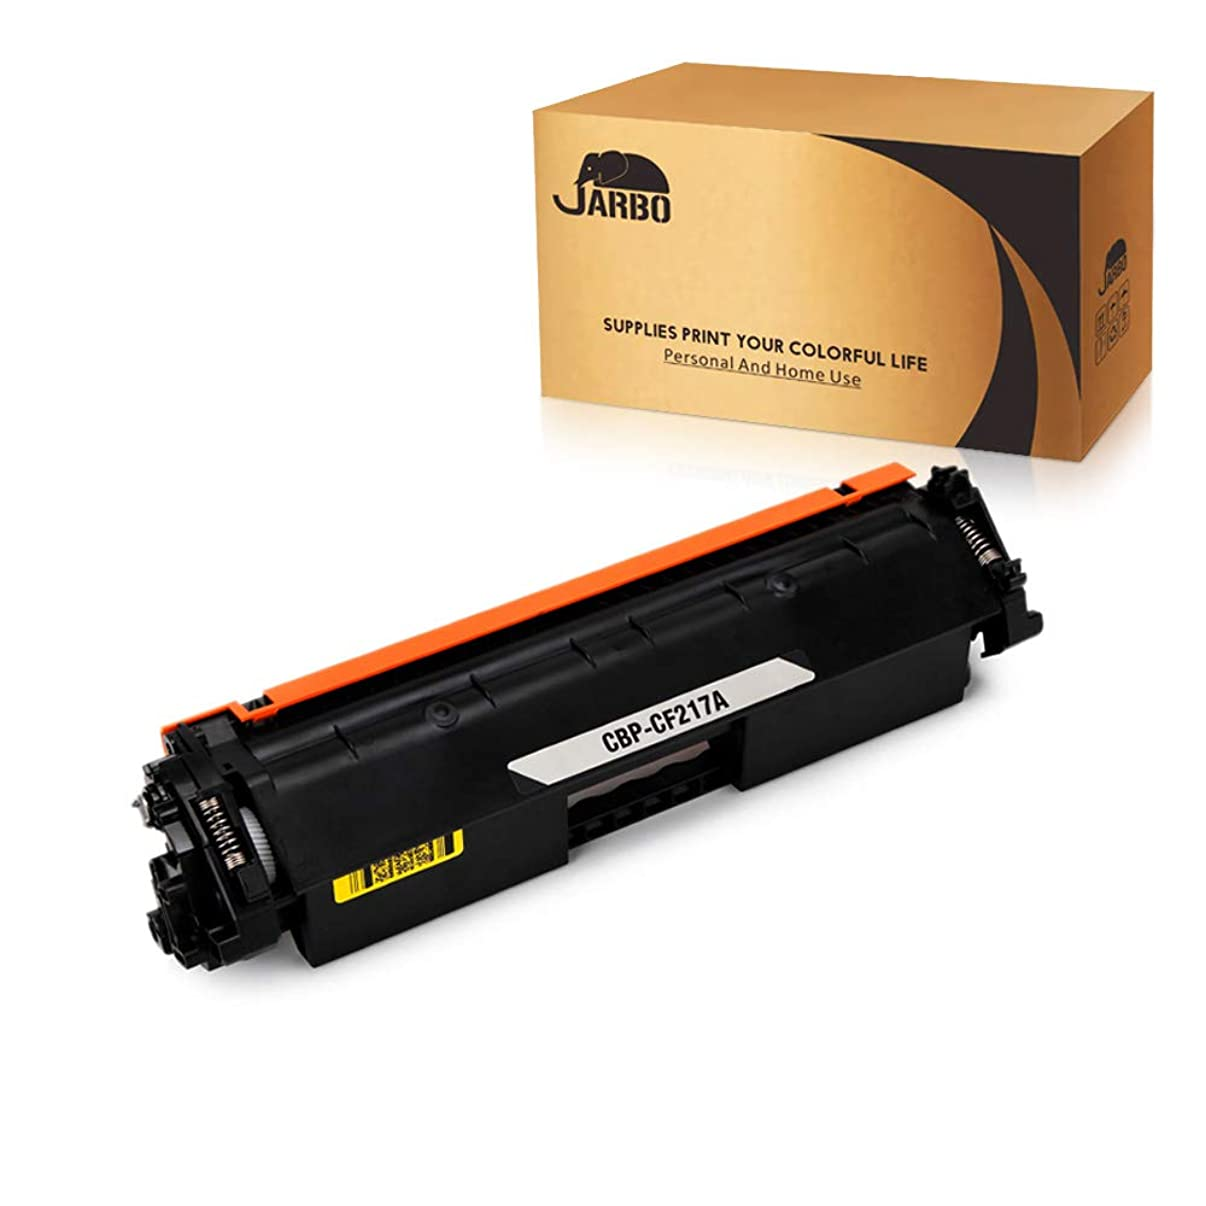 JARBO Compatible Toner Cartridges Replacement for HP 17A CF217A Toner Cartridges High Yield, 1 Black, Use with HP Laserjet Pro M130fw M102w M130nw M130fn M130 M102 M102a M130a Printer